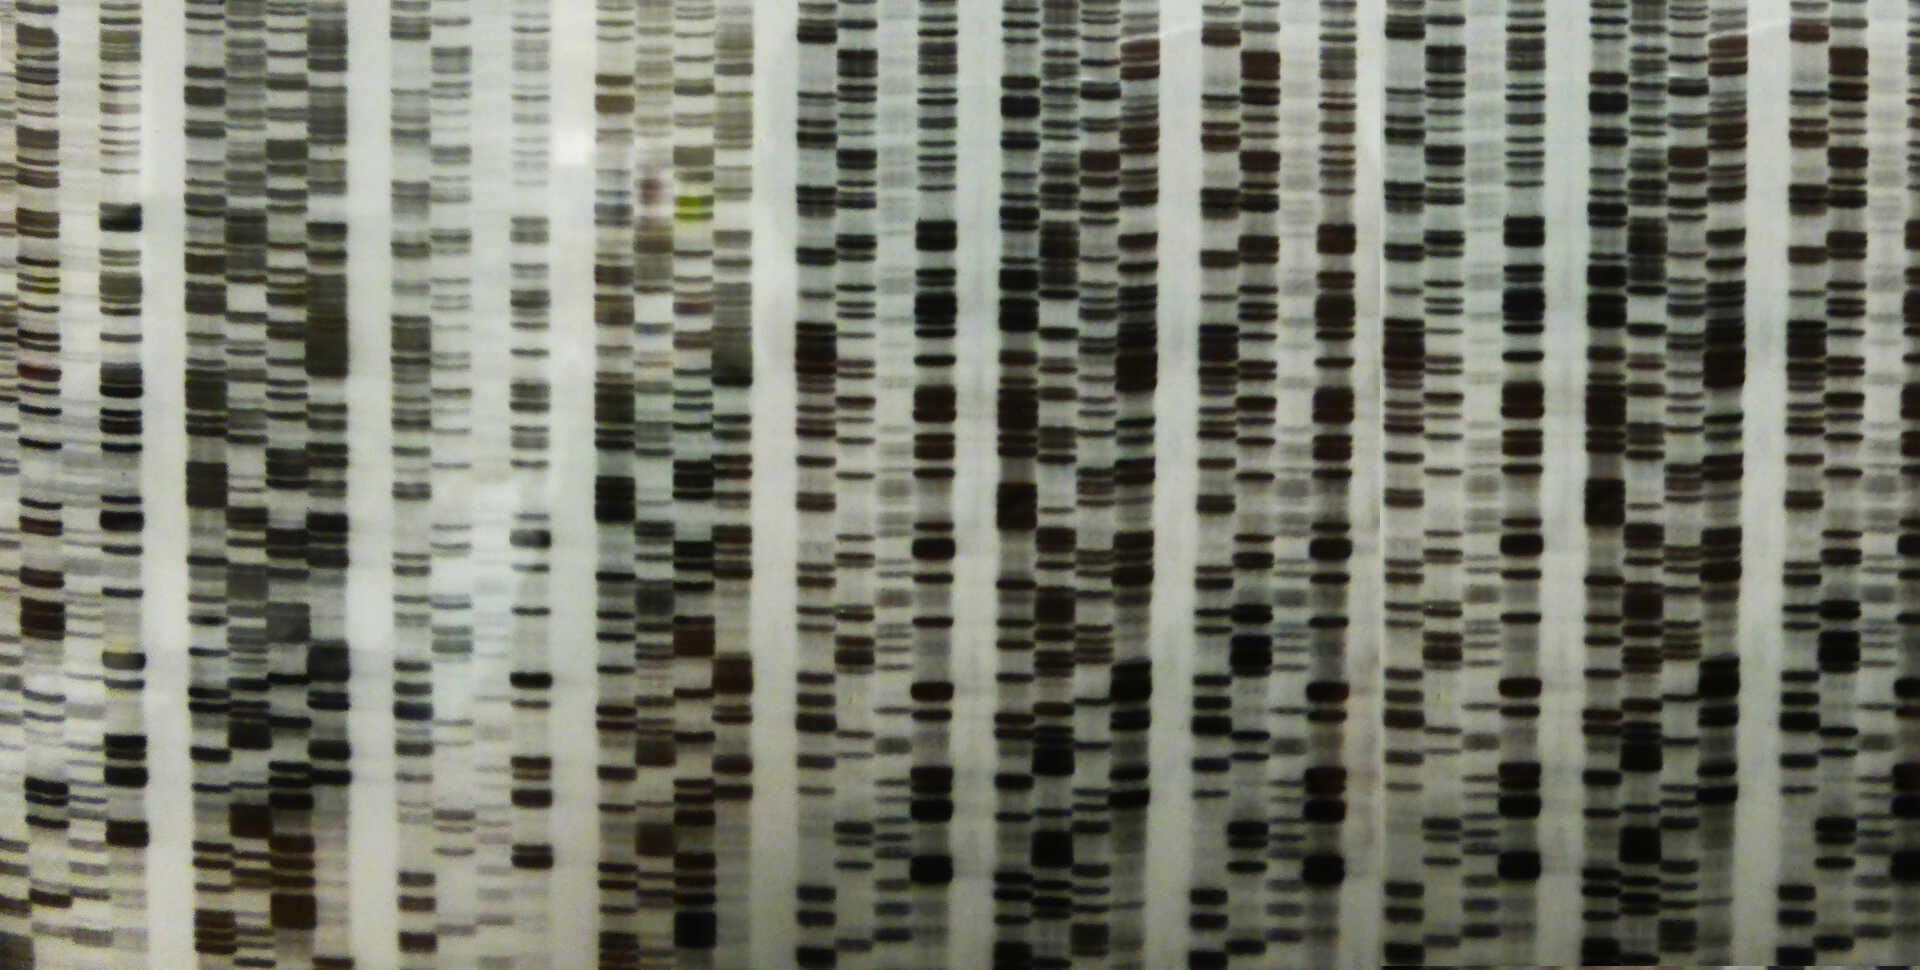 1996 Autorad from manual Sanger sequencing